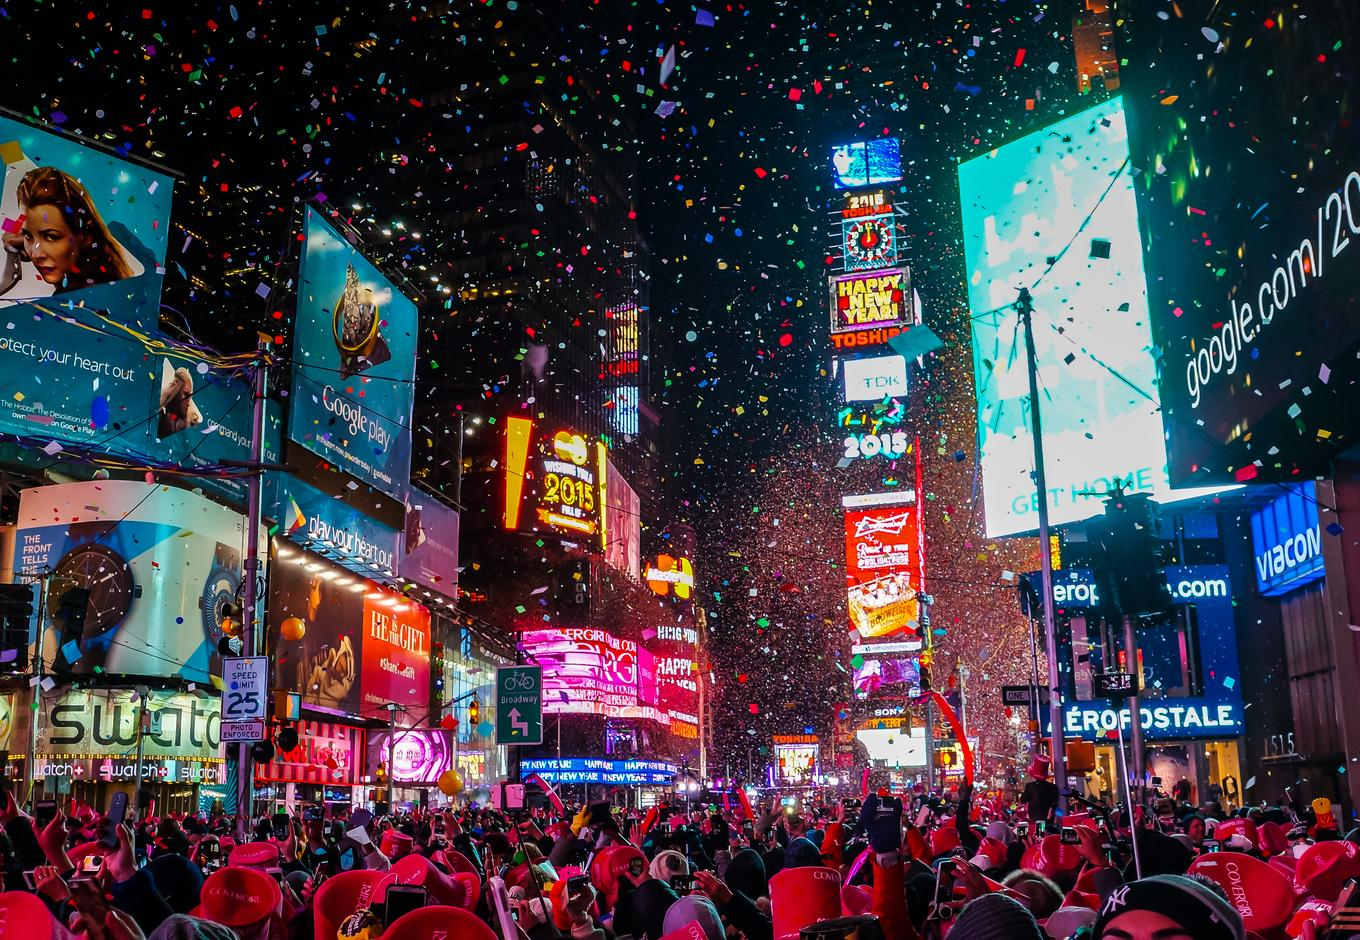 New Year's Eve celebration at the Times Square, in New York City.